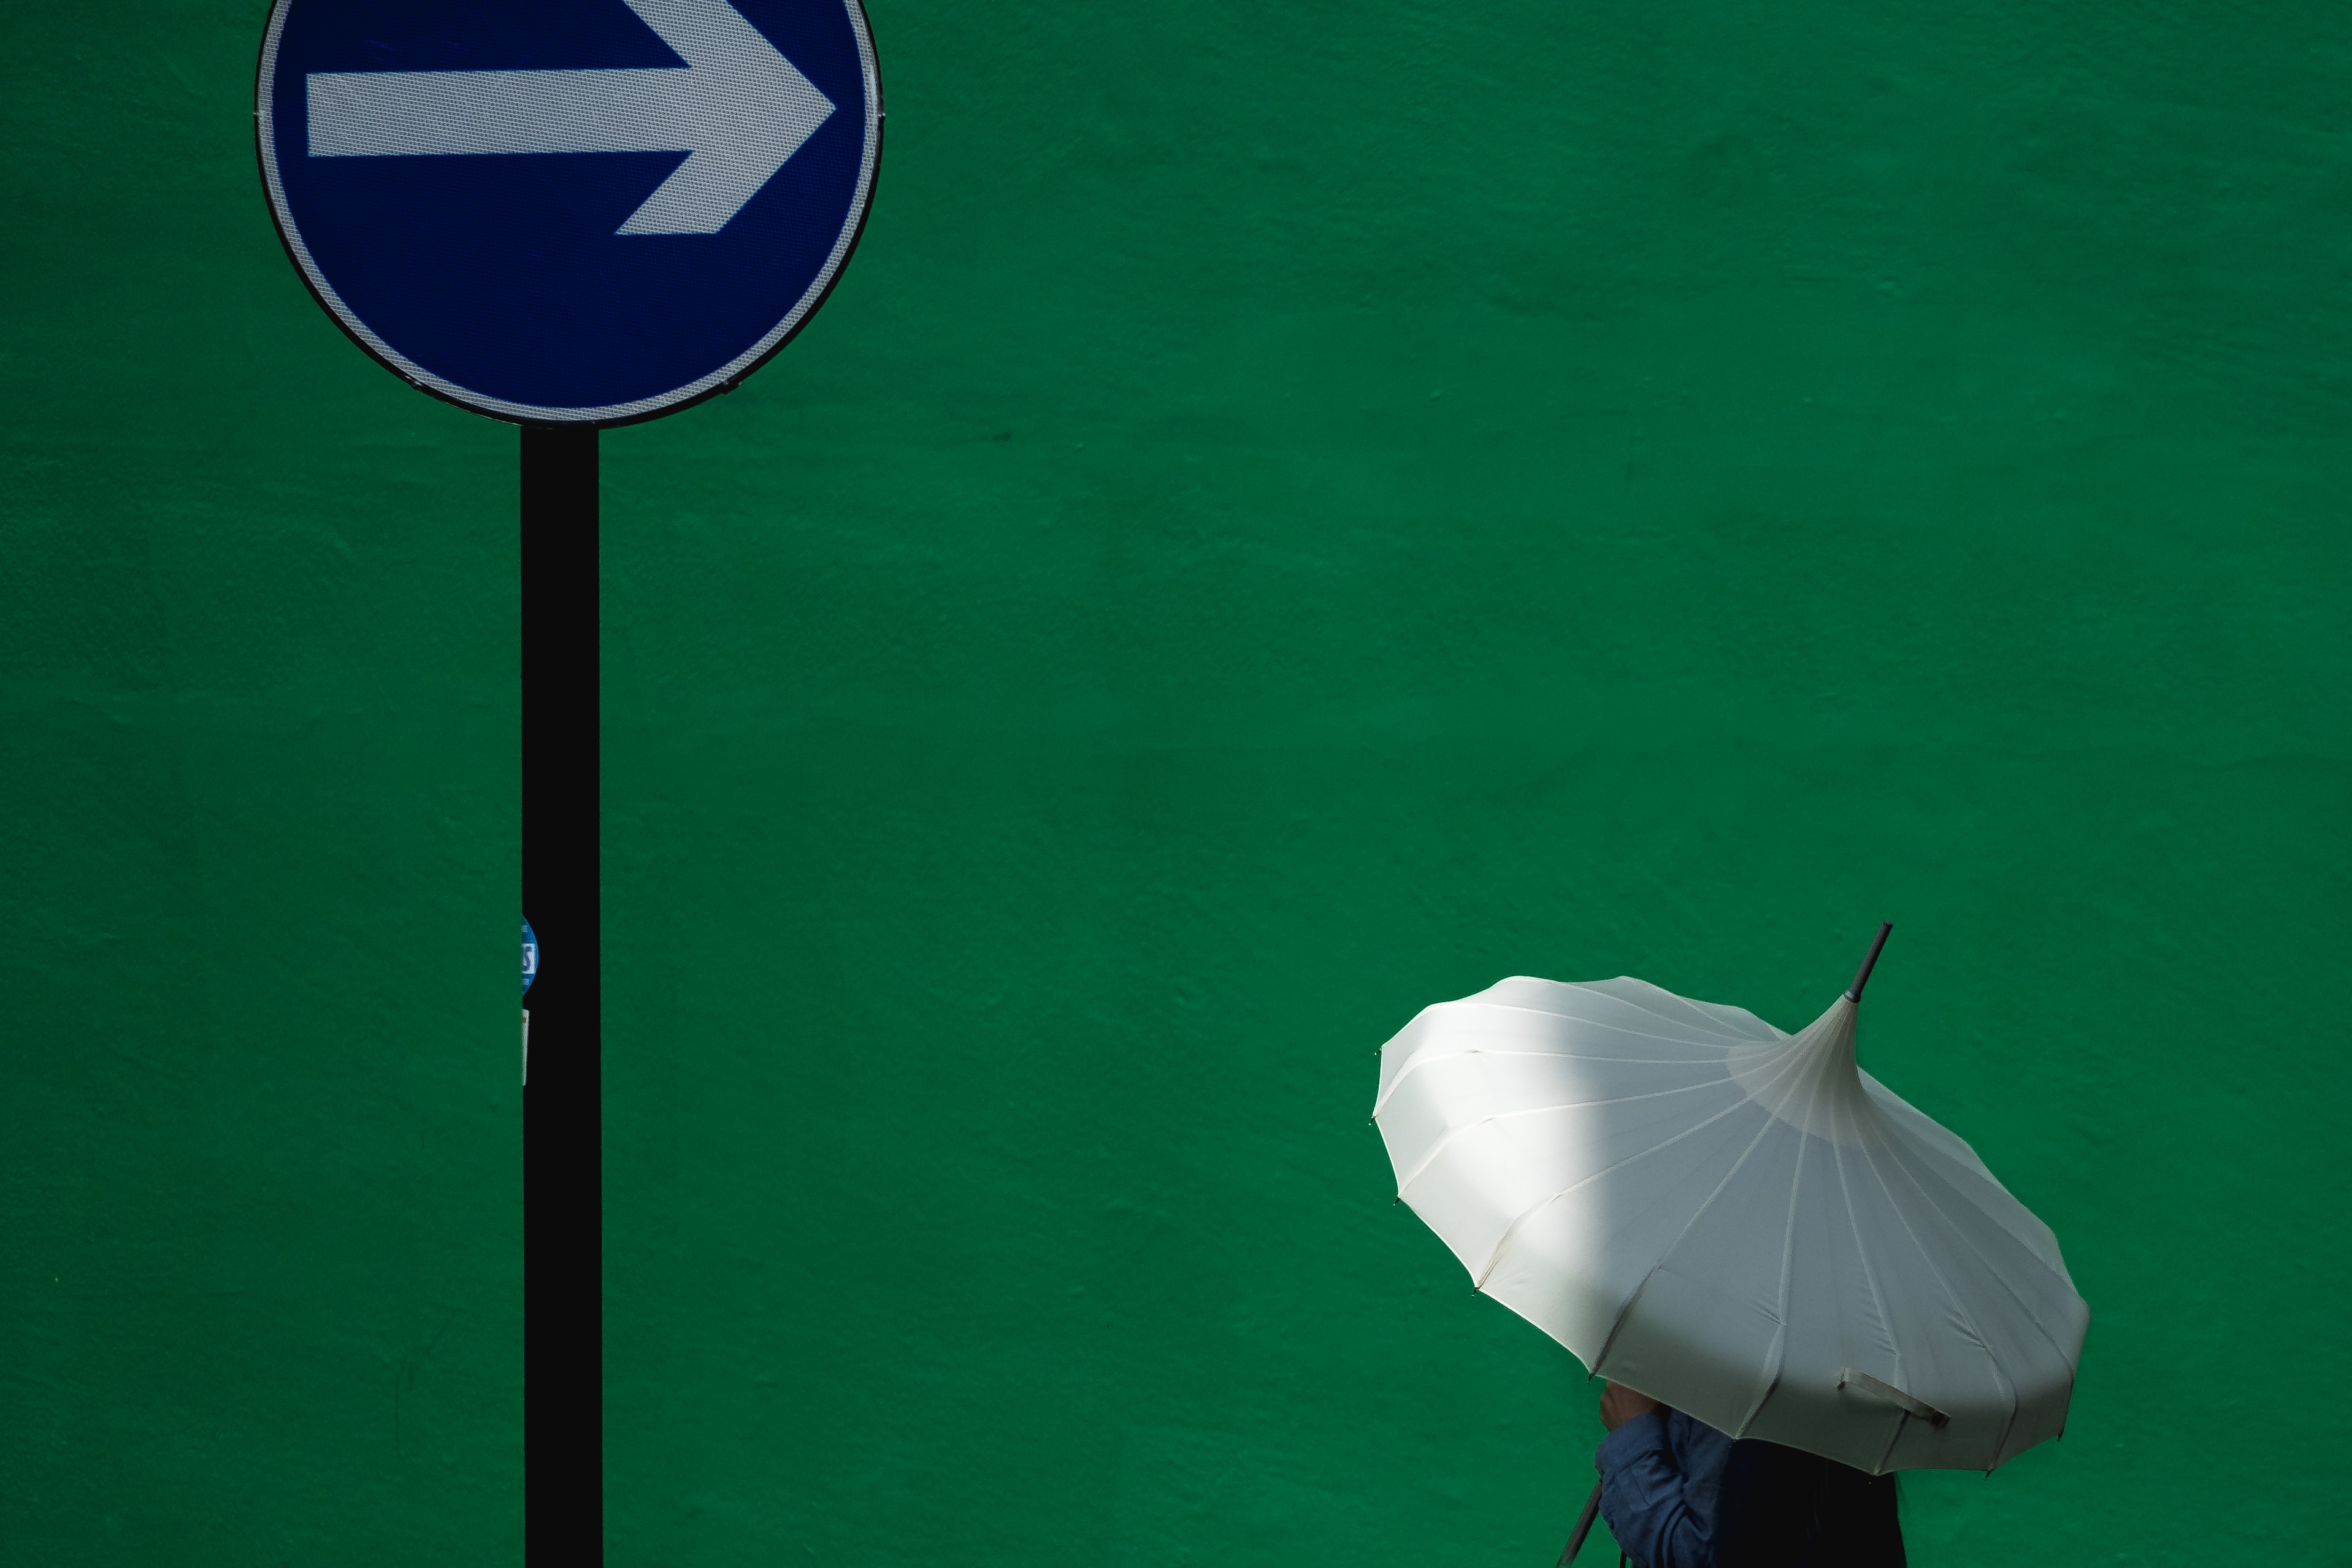 person using white umbrella near blue road signage